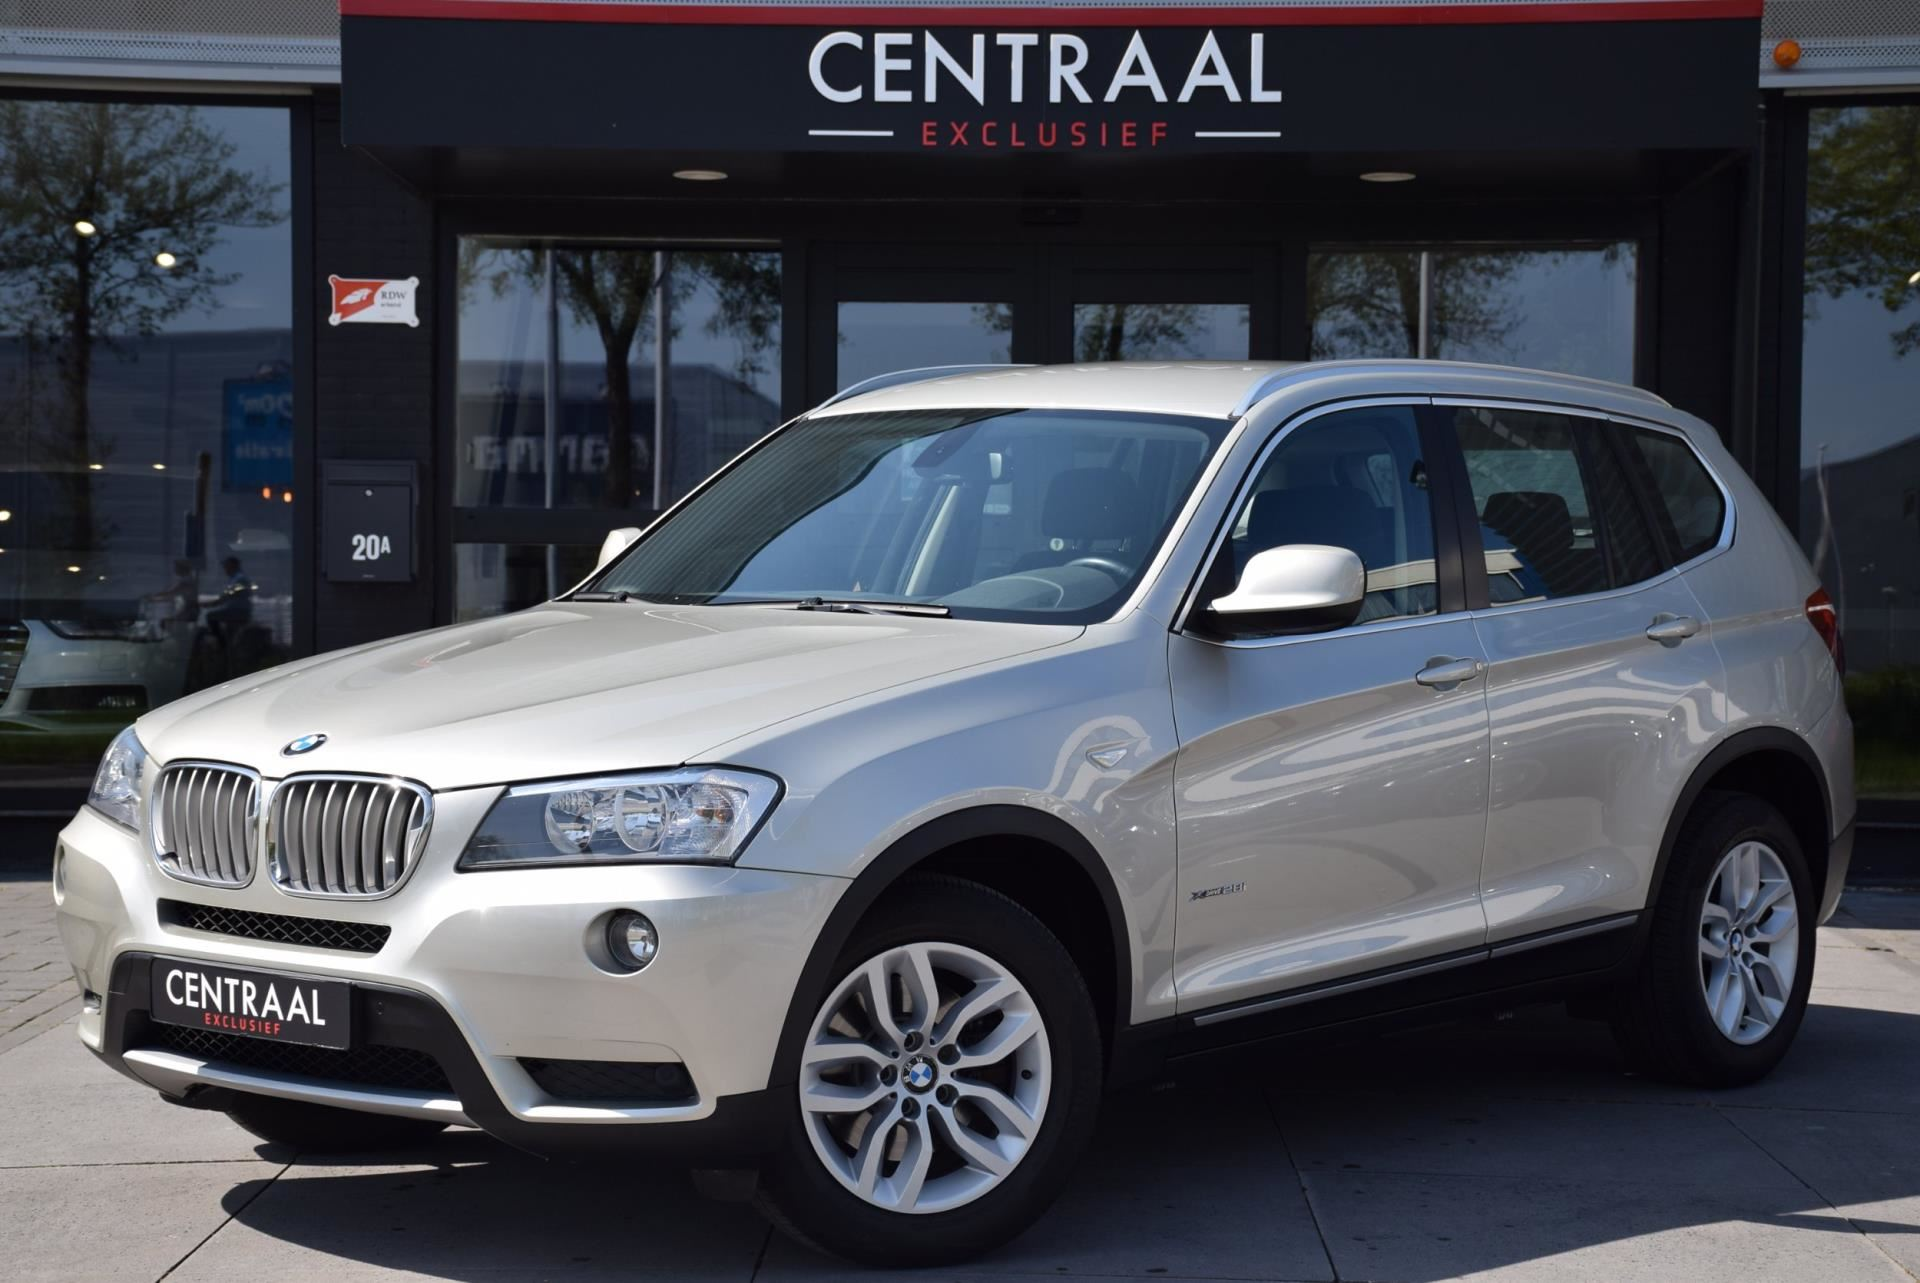 BMW X3 occasion - Centraal Exclusief B.V.